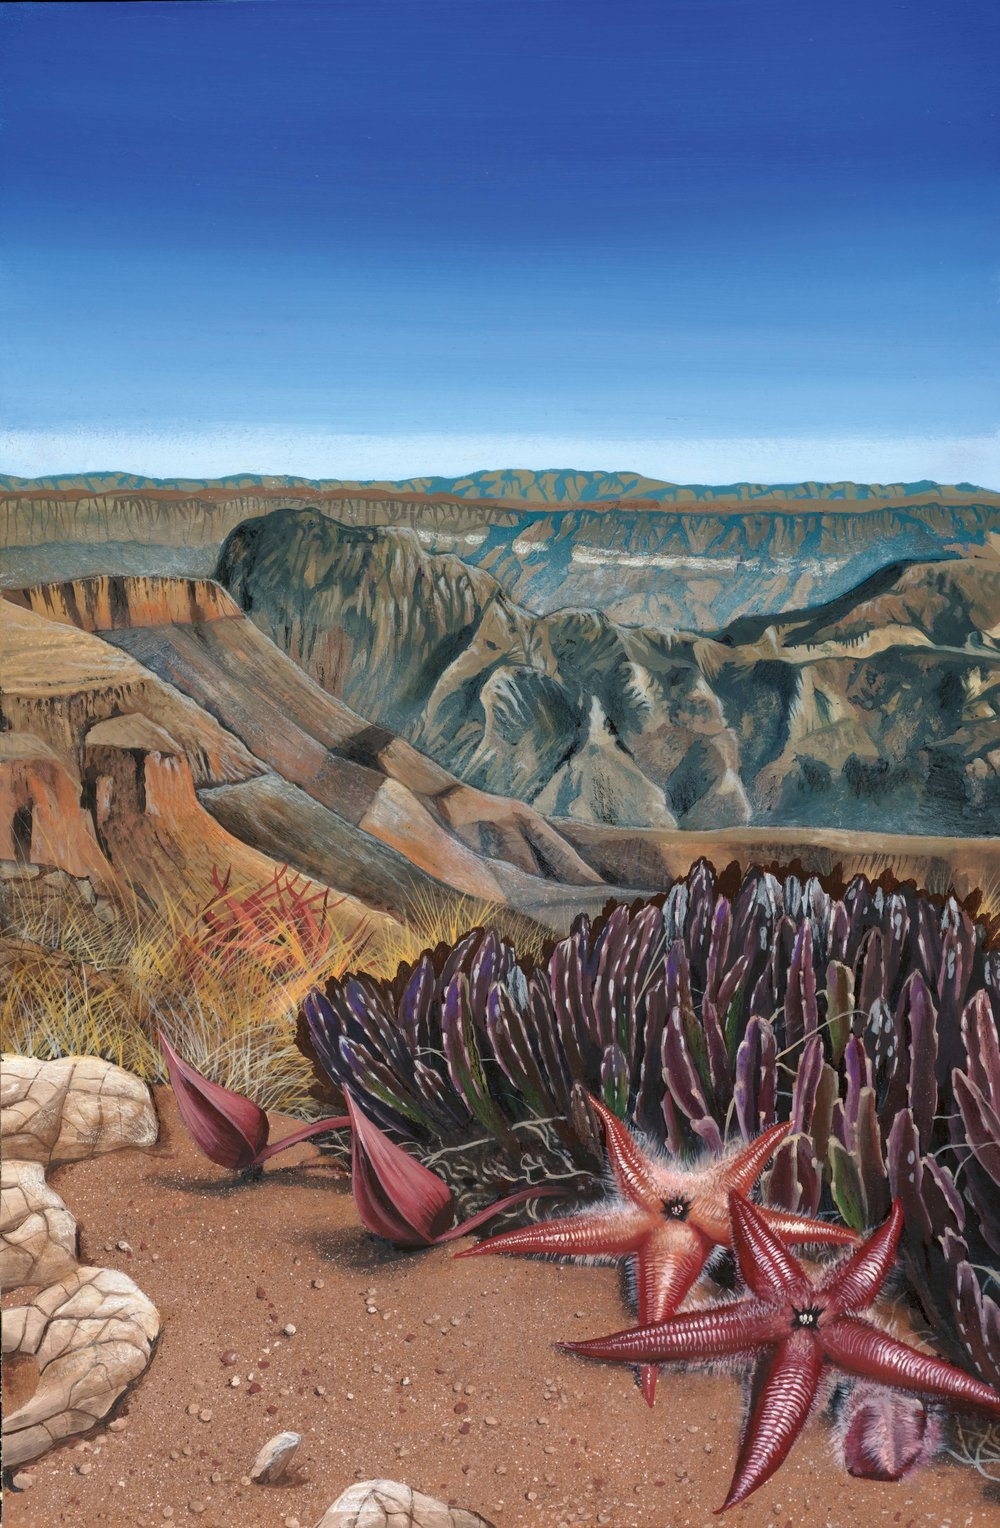 Starfish flowers ( Stapelia gariepensis )   growing on dry mountains near the border between South Africa and Namibia. Painting by Chris Thorogood.